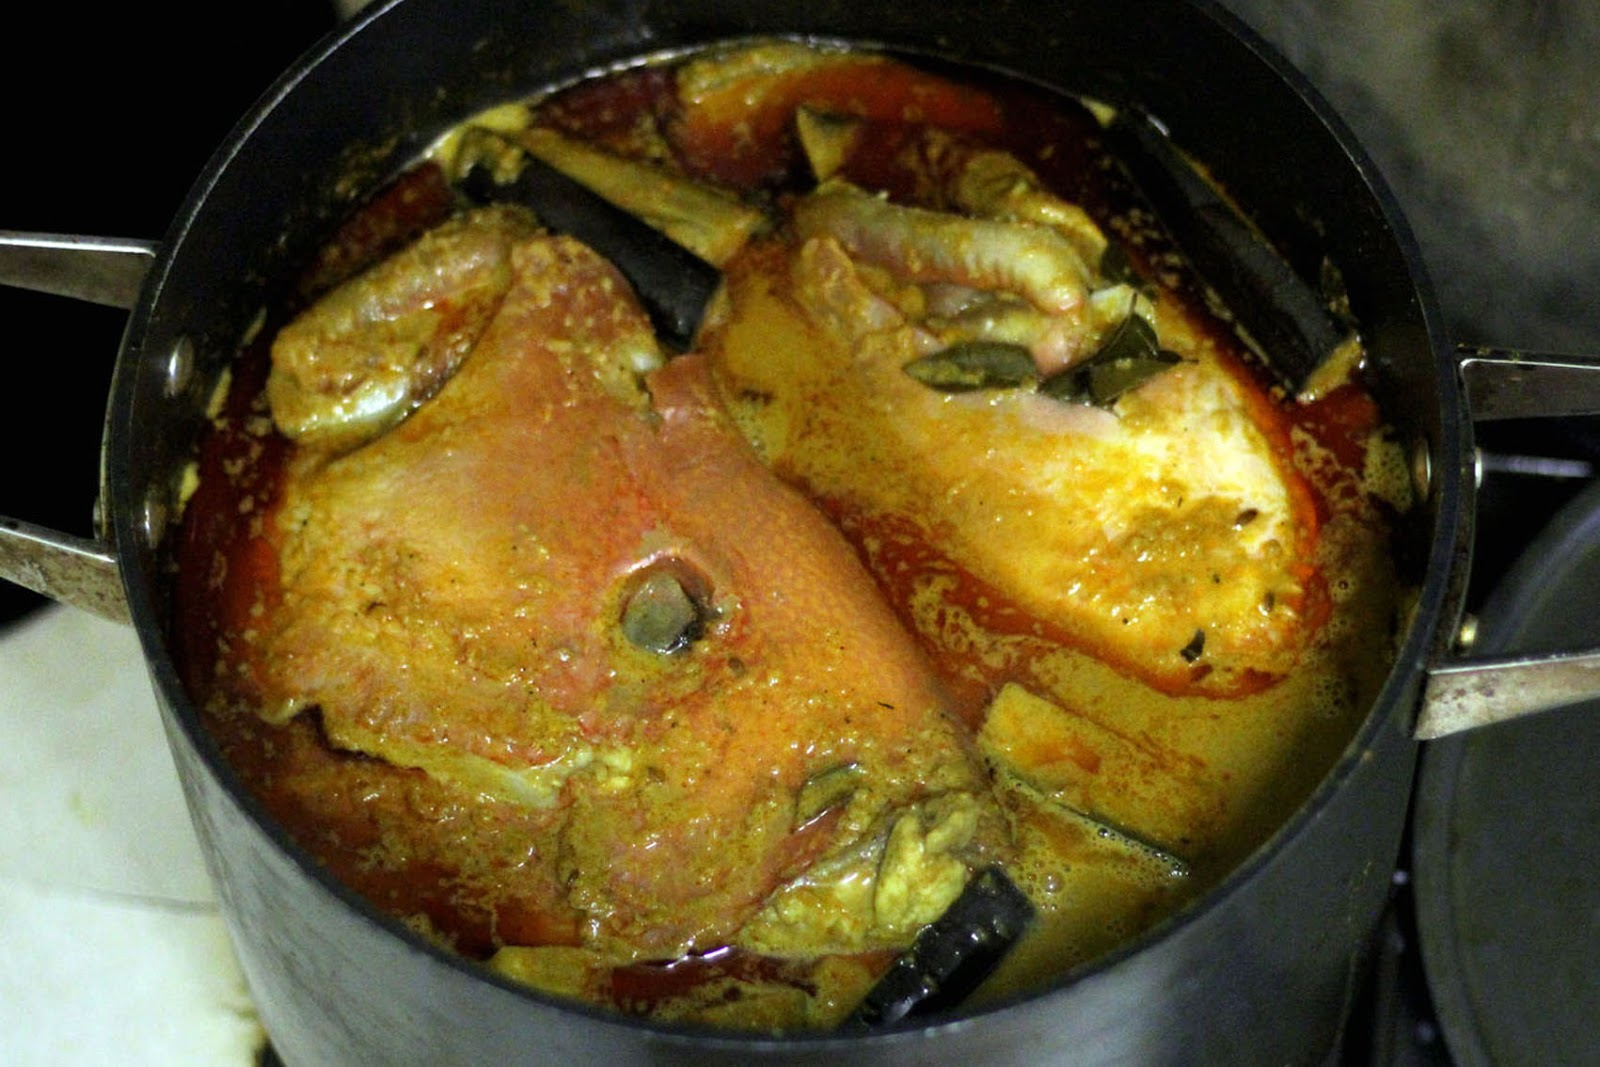 Feast To The World Face Off Singapore Nyonya Fish Head Curry Asam Gelugur 1 Kg Season With Salt And Sugar Taste Serve Piping Hot Lots Of Steamed Rice Soak Up All Those Spicy Gravy